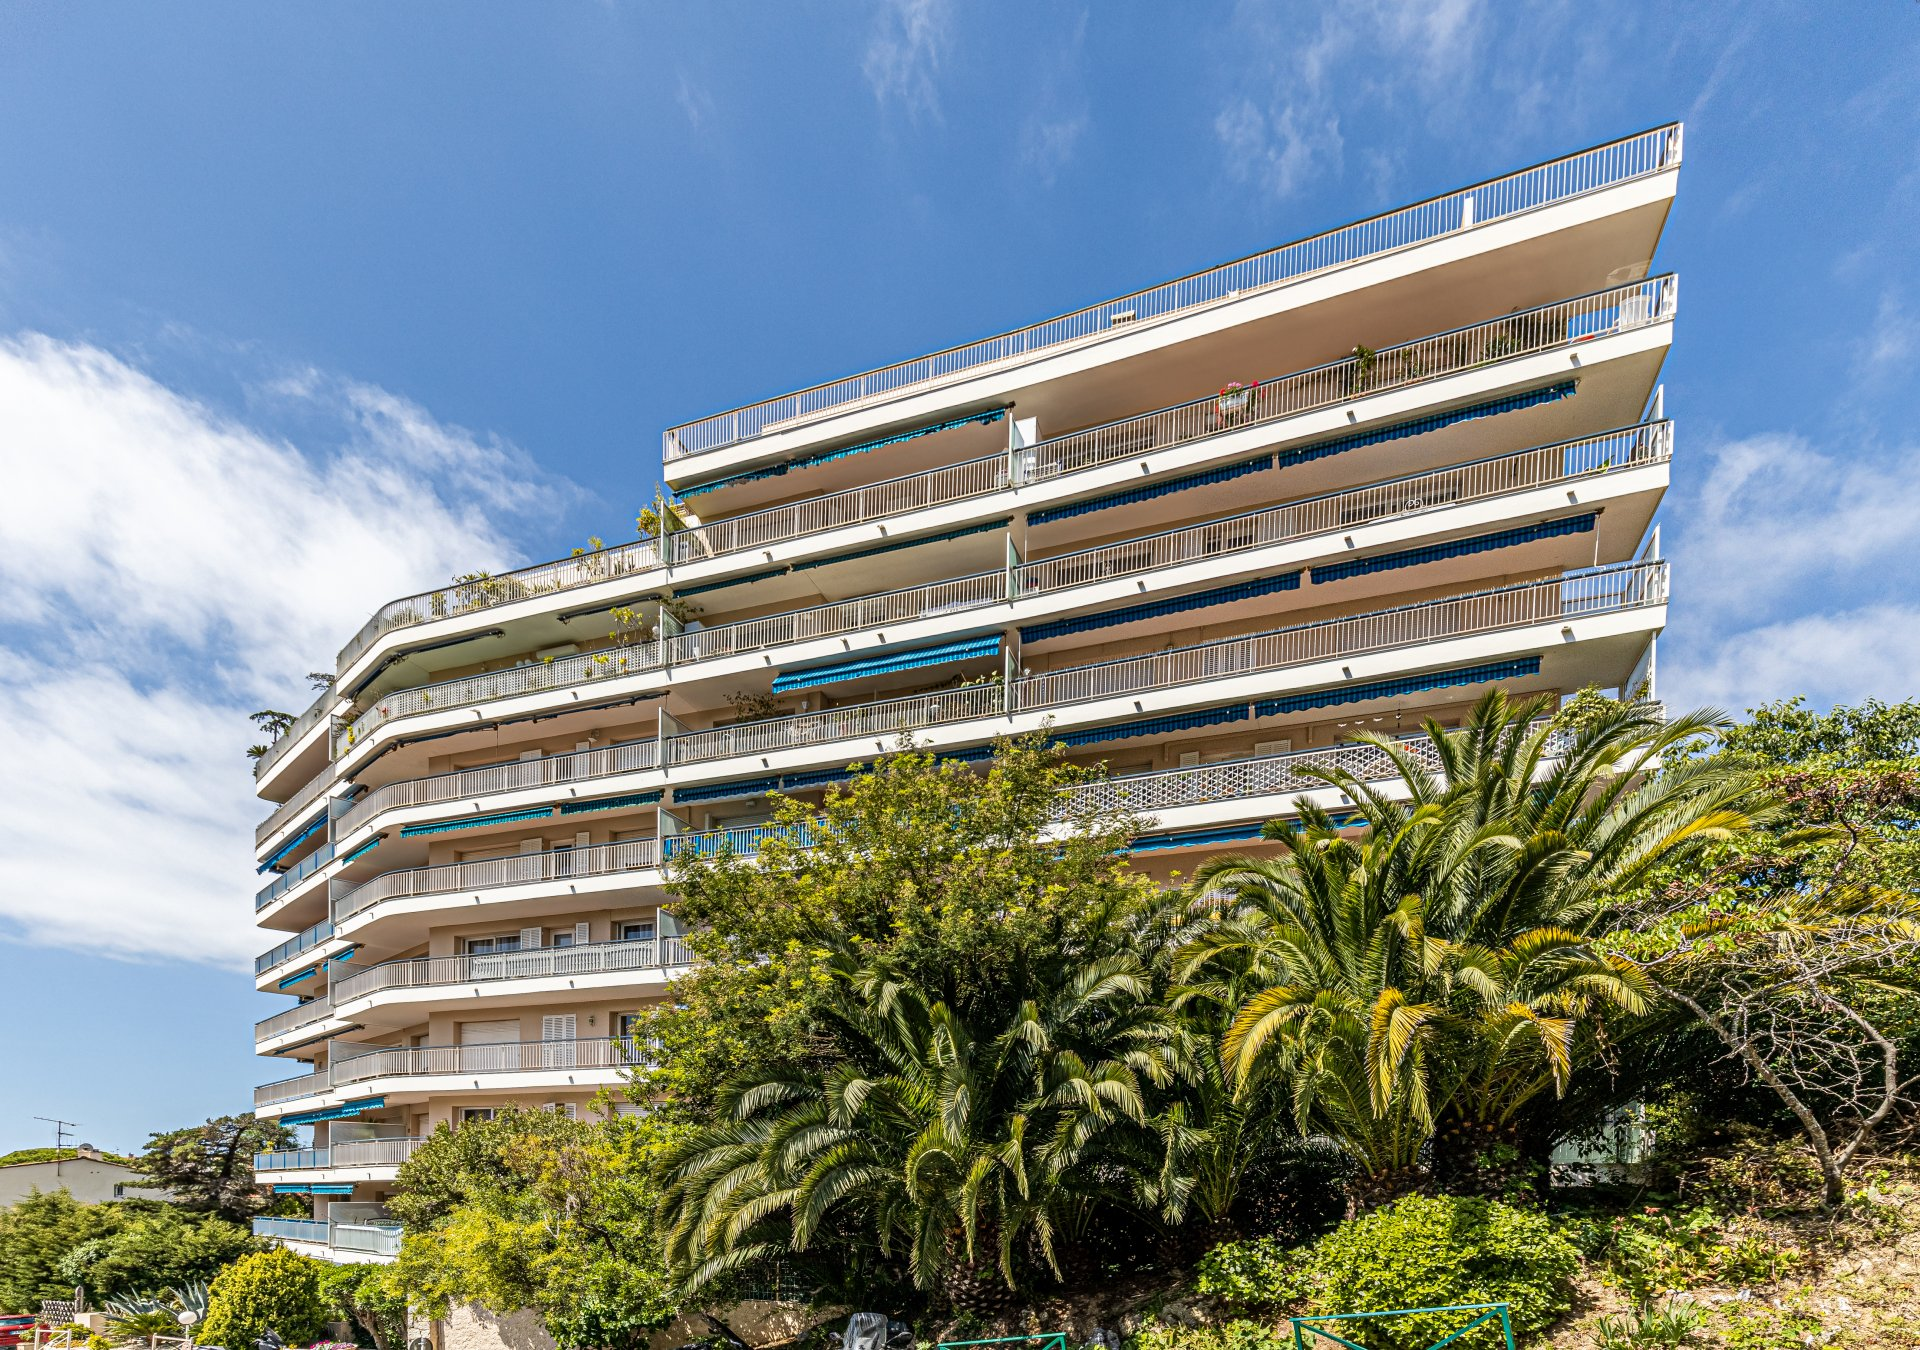 Luxury, 3-bed penthouse, 180 m² terrace, panoramic views, Prado area in Cannes